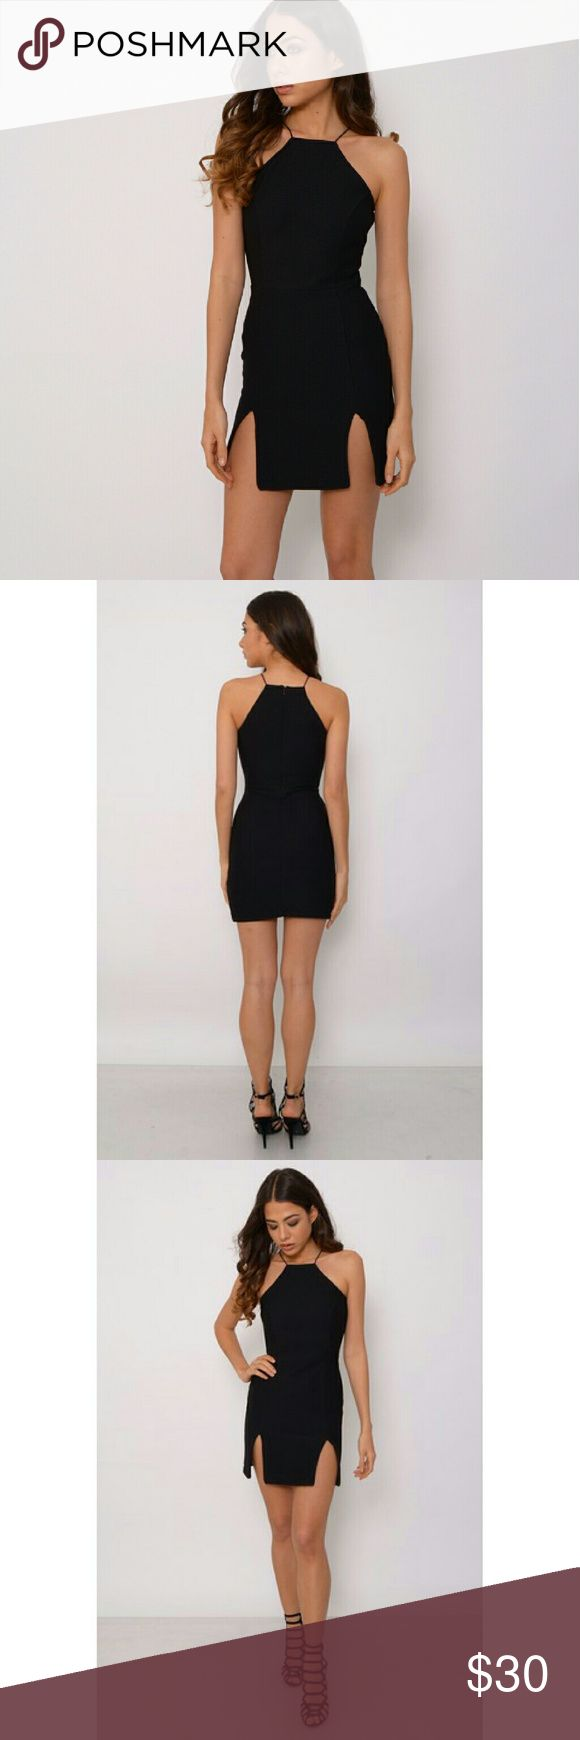 Black Mini Dress New for this spring summer, introducing this gorgeous black bodycon dress with double front split detail. Perfect to wear with high heels, cream clutch bag and add a statement necklace for that extra glam touch. Classic LBD. Dresses Mini